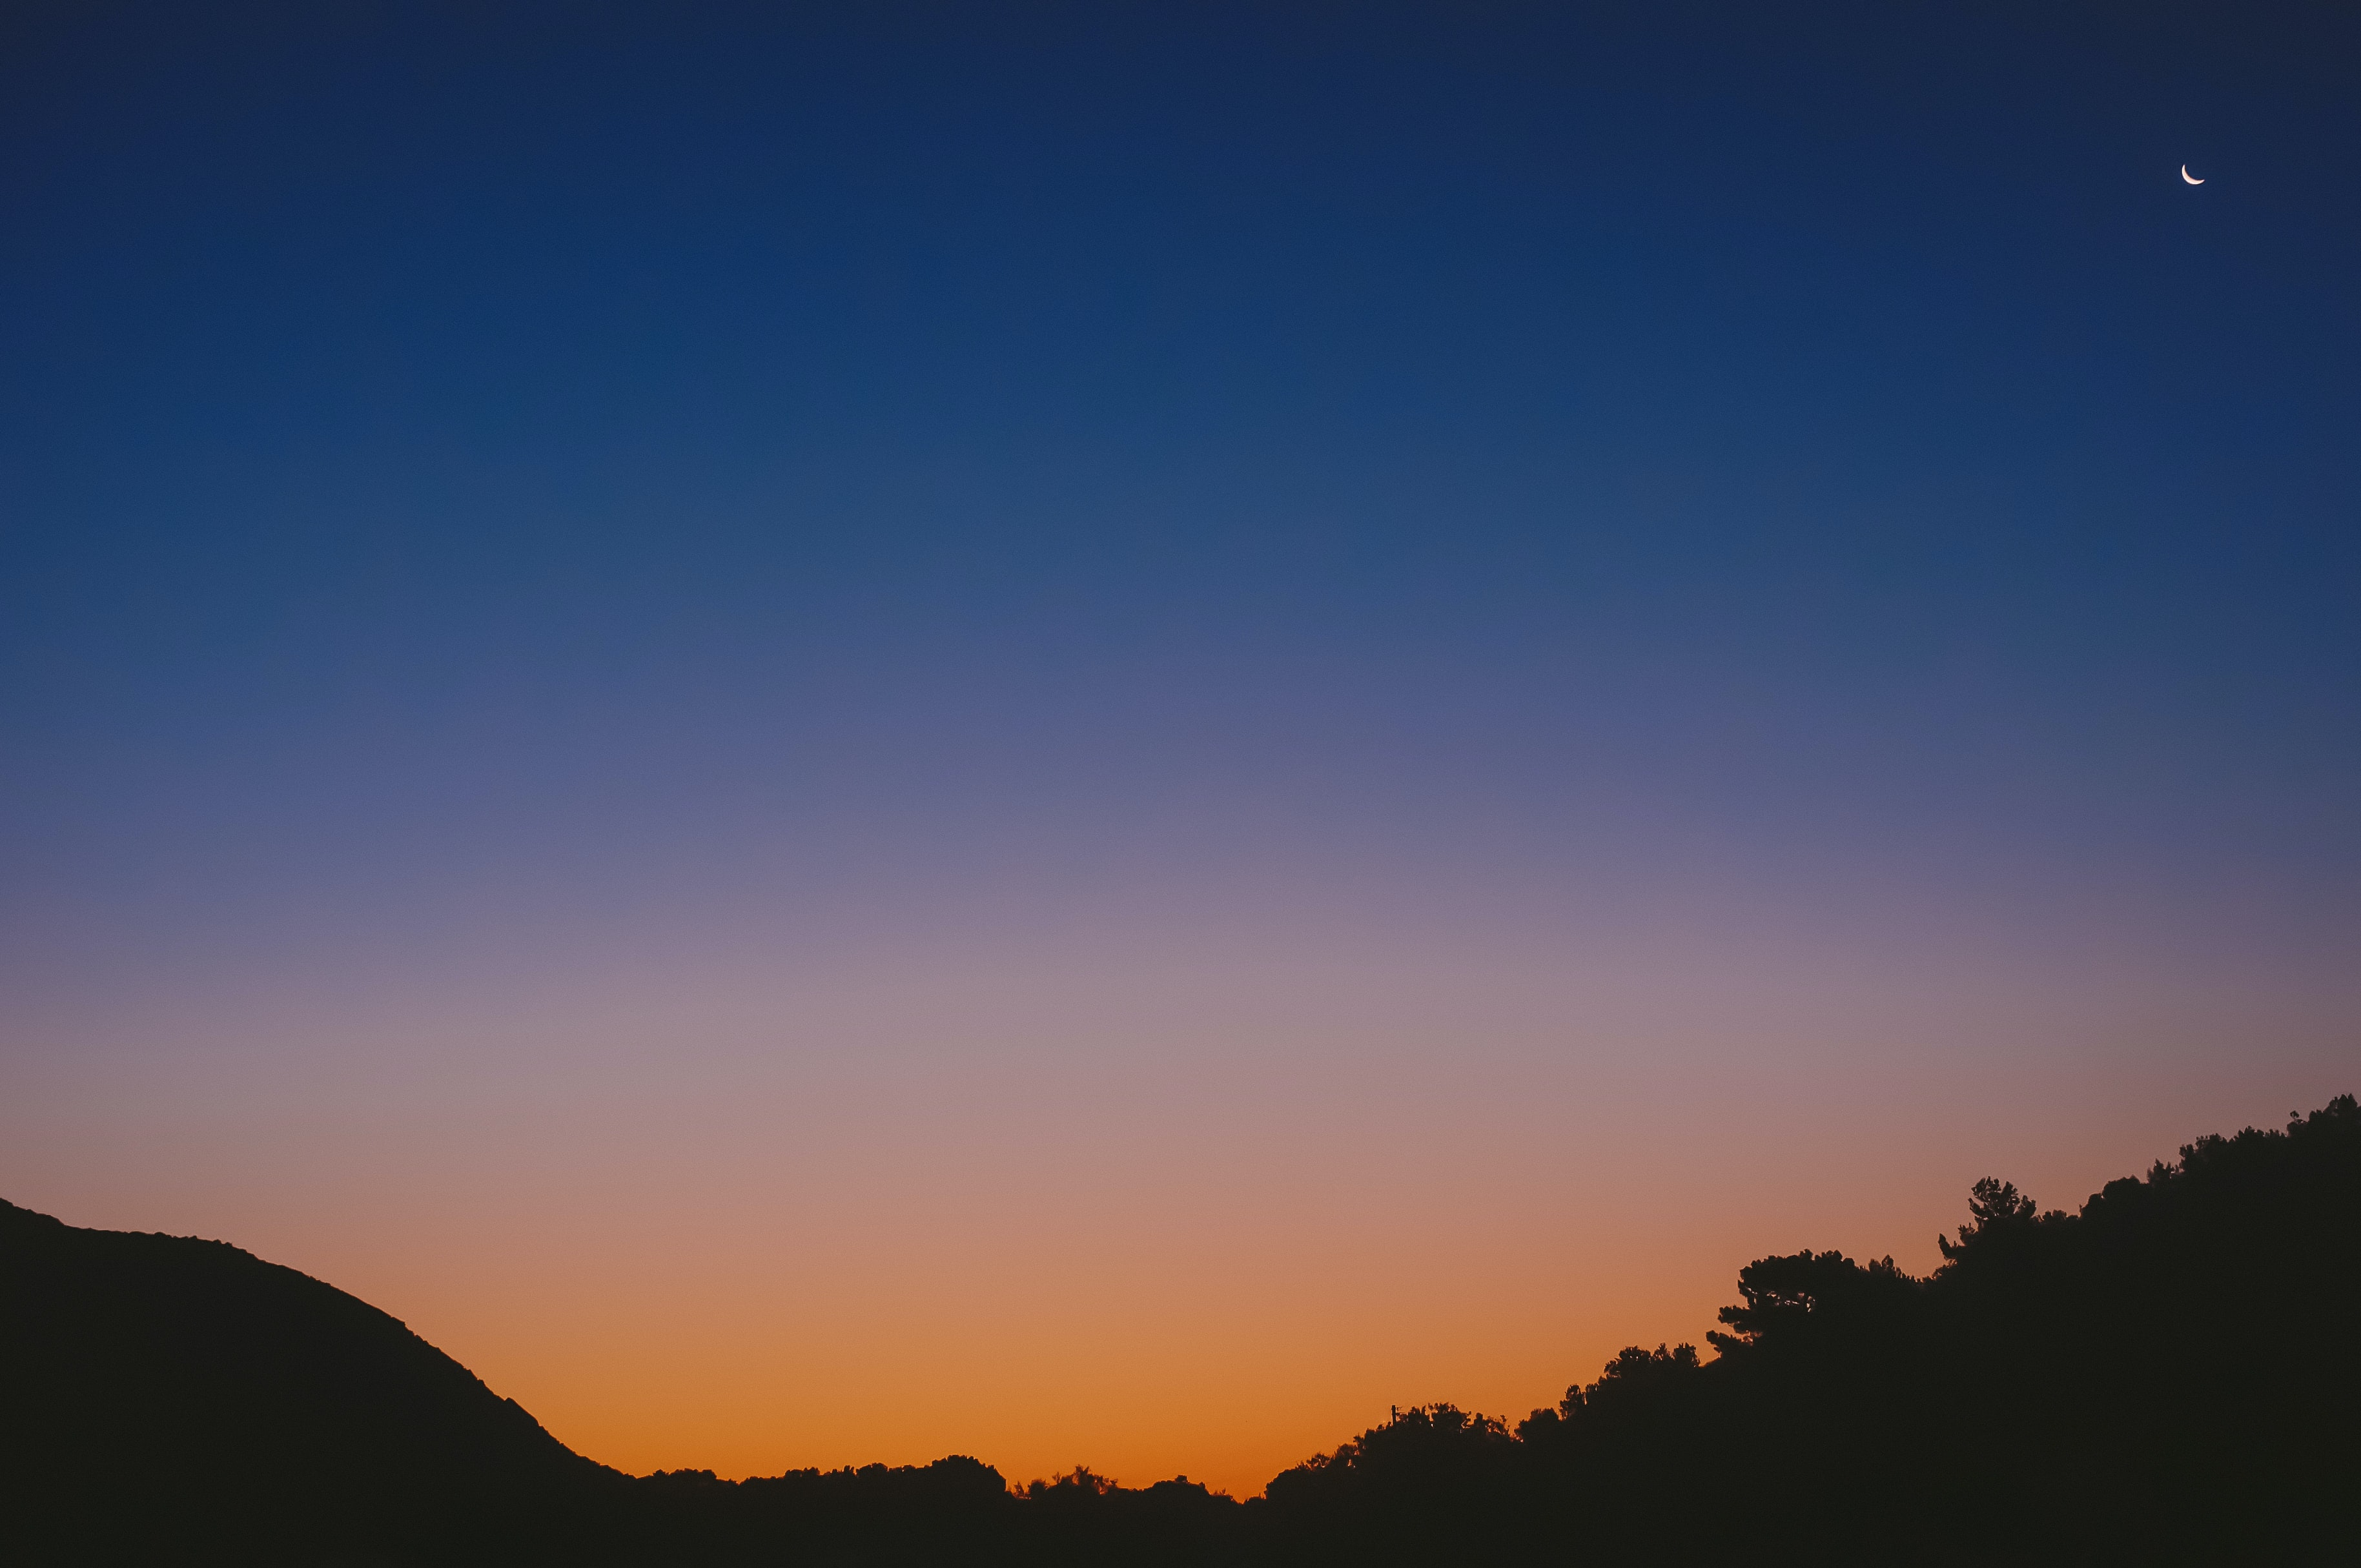 Small crescent moon rises in the twilight glow of the sky